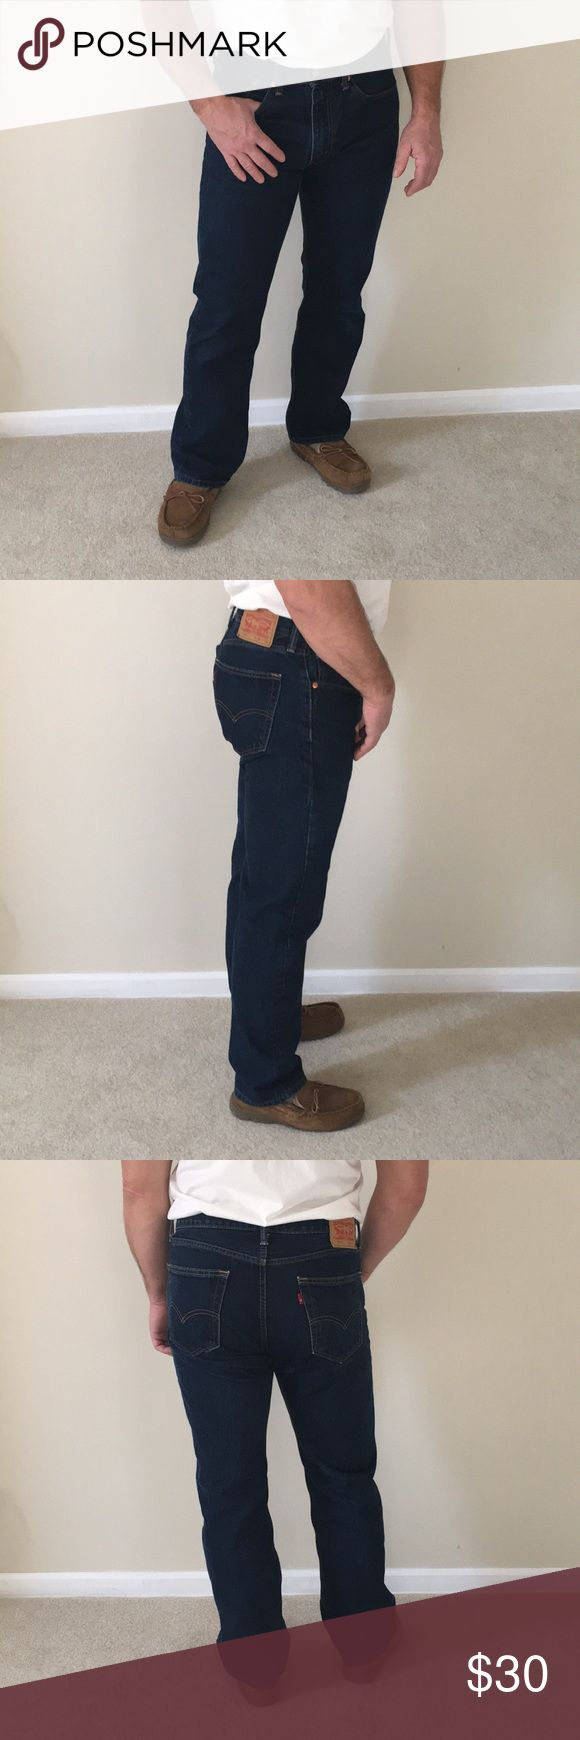 MENS 505 LEVIS BLUE JEANS 33 x 32 MENS LEVIS 505  BLUE JEANS SIZE 33 x 32. IN NEW CONDITION. WORN ONCE. NO TAGS. Levis Jeans Bootcut